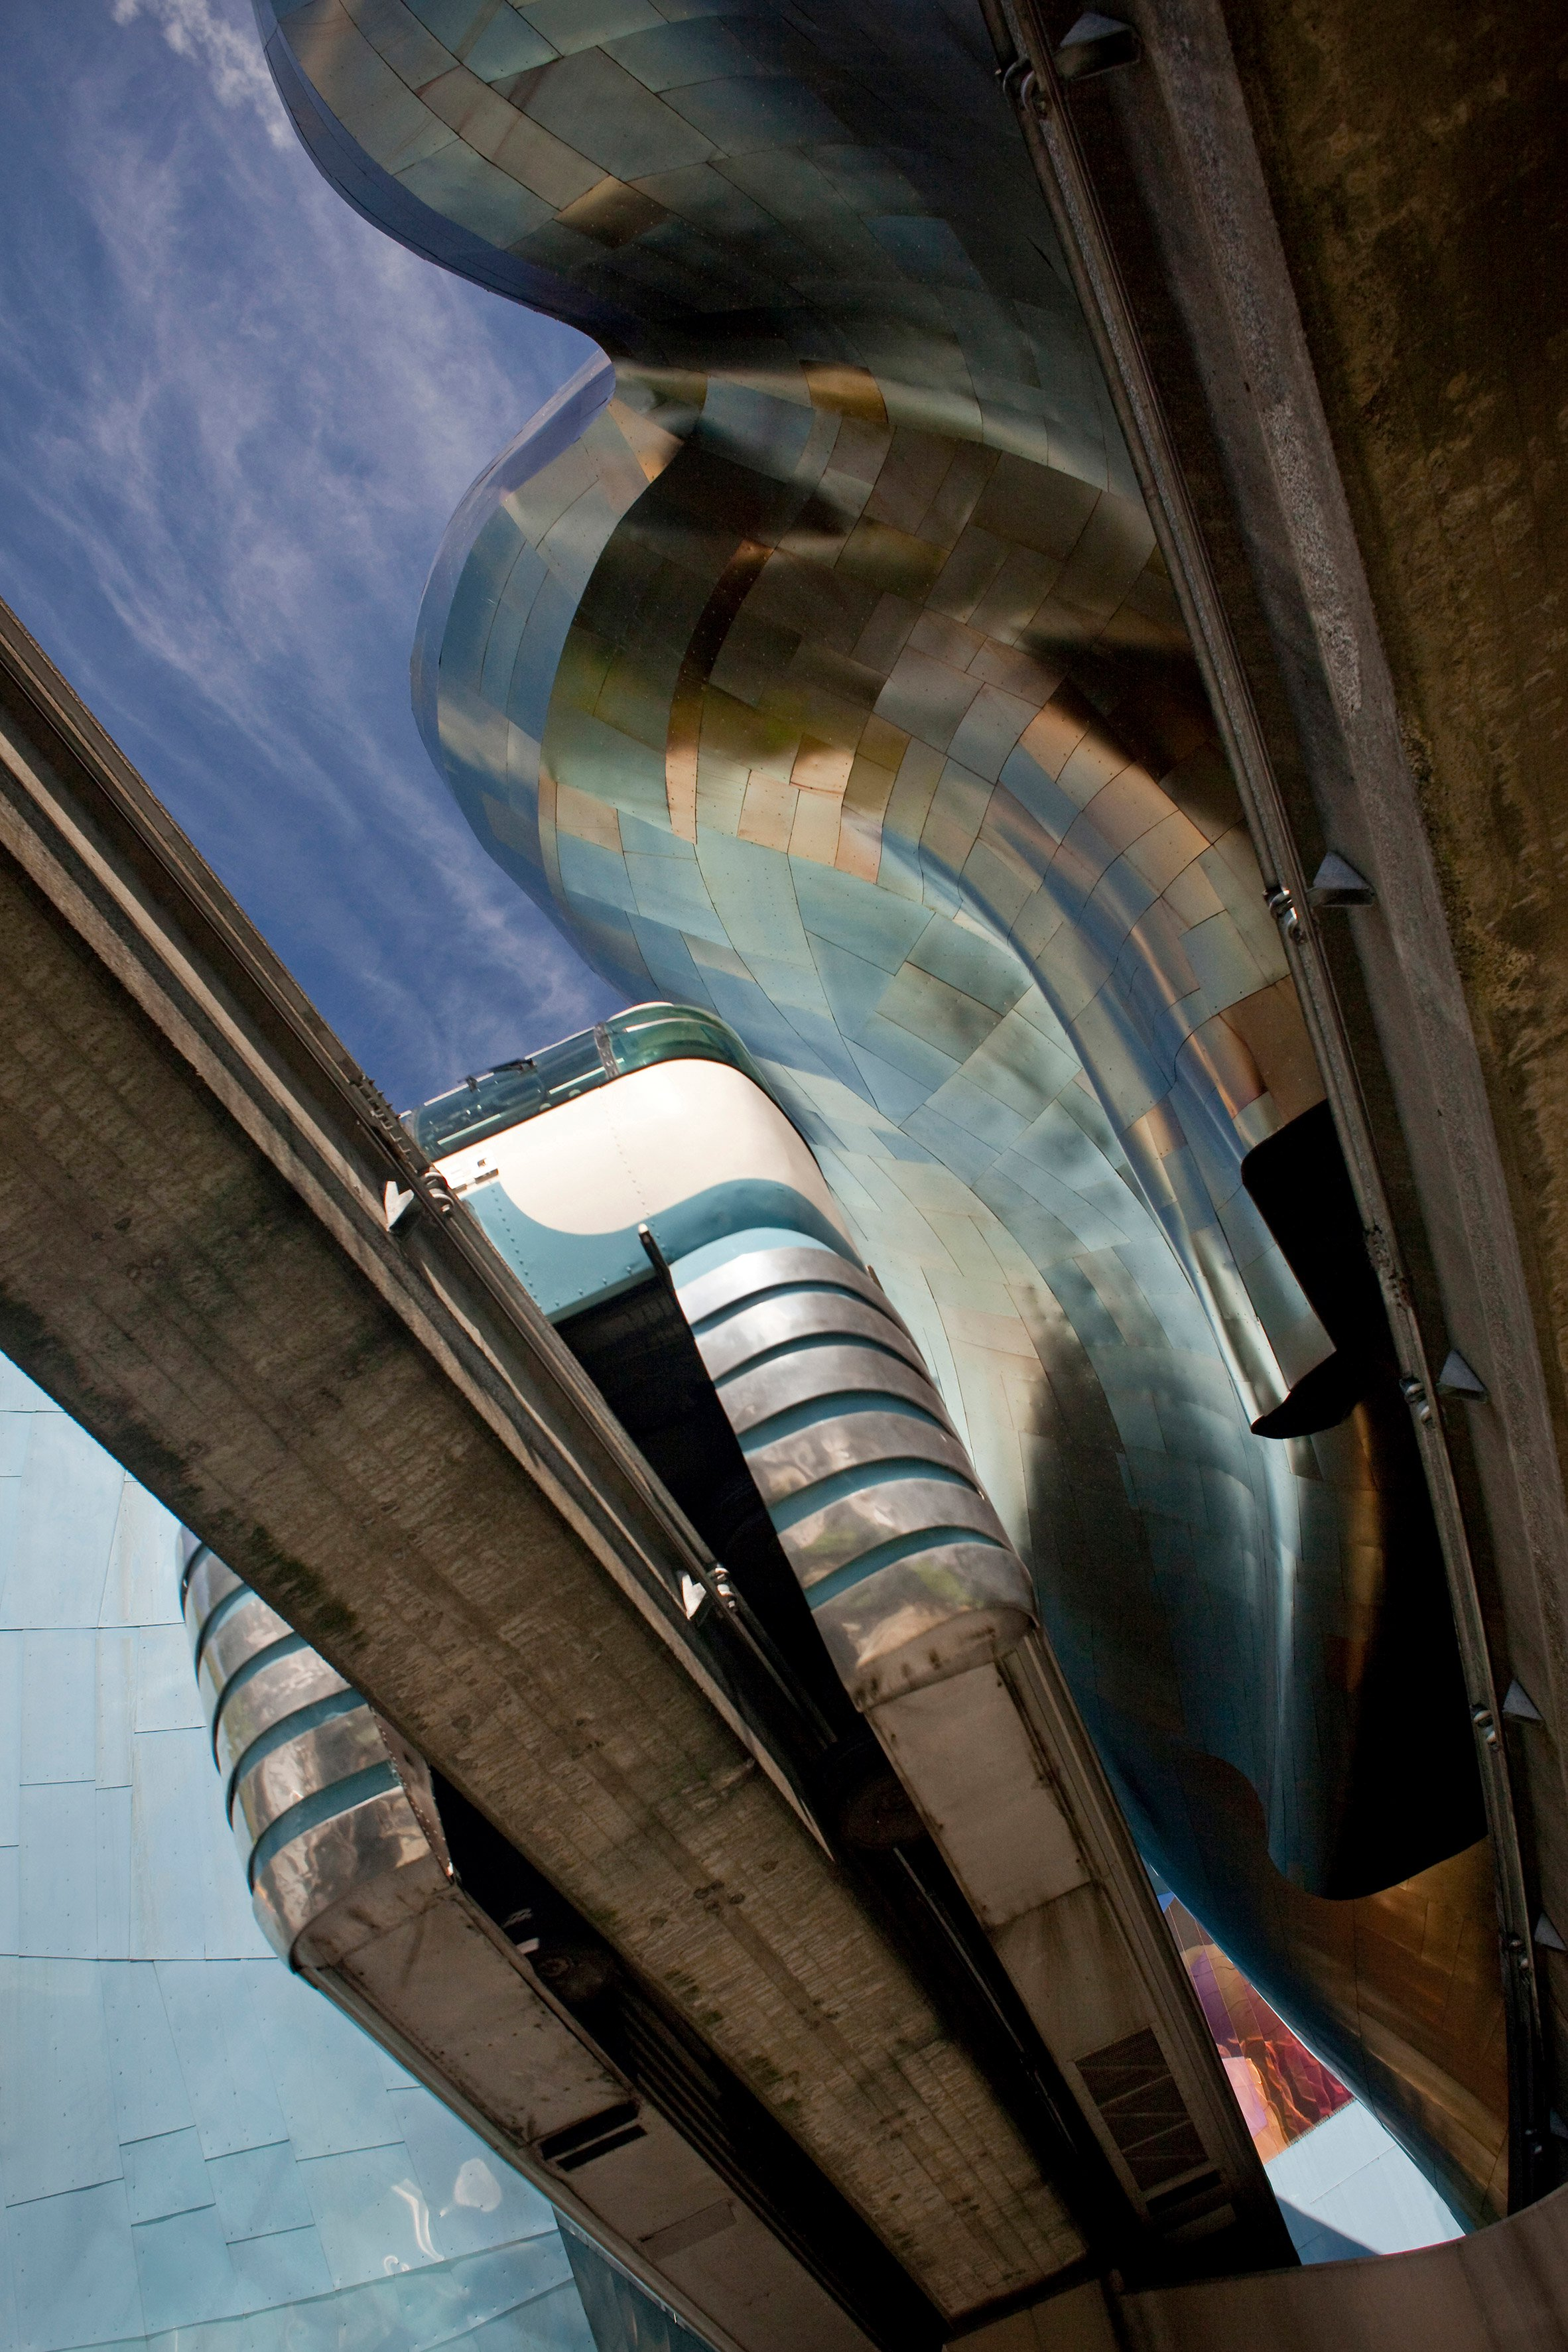 Museum of the Pop Culture (formerly known as the EMP Museum), Seattle, USA, by Frank Gehry